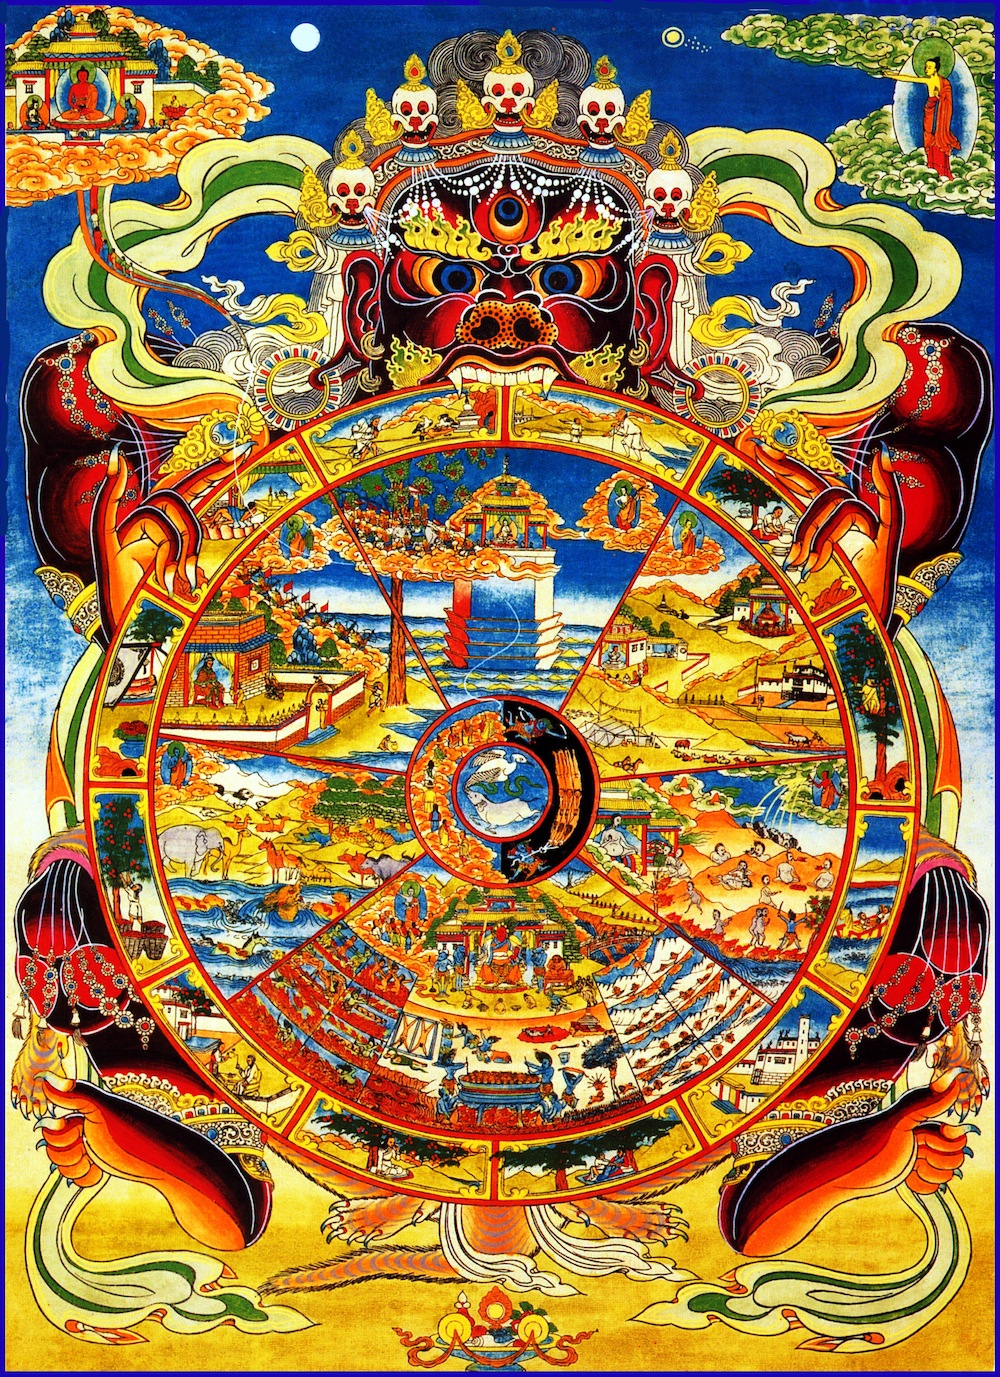 "Tibetan Buddhist bhavacakra, unknown artist (Source: <a href=""http://commons.wikimedia.org/wiki/File:Bhavachakra.jpg"">Wikimedia Commons</a>). This Tibetan portrayal of the bhavacakra, or ""Wheel of Becoming,"" illustrates the Buddhist doctrine of rebirth. Buddhism recognizes six classes of sentient being in the universe. As portrayed in the Wheel above, they are: devas, or gods (top); asuras, or fallen gods (upper left); humans (upper right); animals (lower left); pretas, or hungry ghosts (lower right); and the damned souls of Hell (bottom). The monster clutching the wheel is Yama, the Lord of Death, who represents the endless cycle of life and death in which all beings are trapped. The Buddha appears in the upper right, pointing to the full moon, which signifies that it is possible to escape the cycle by attaining enlightenment."